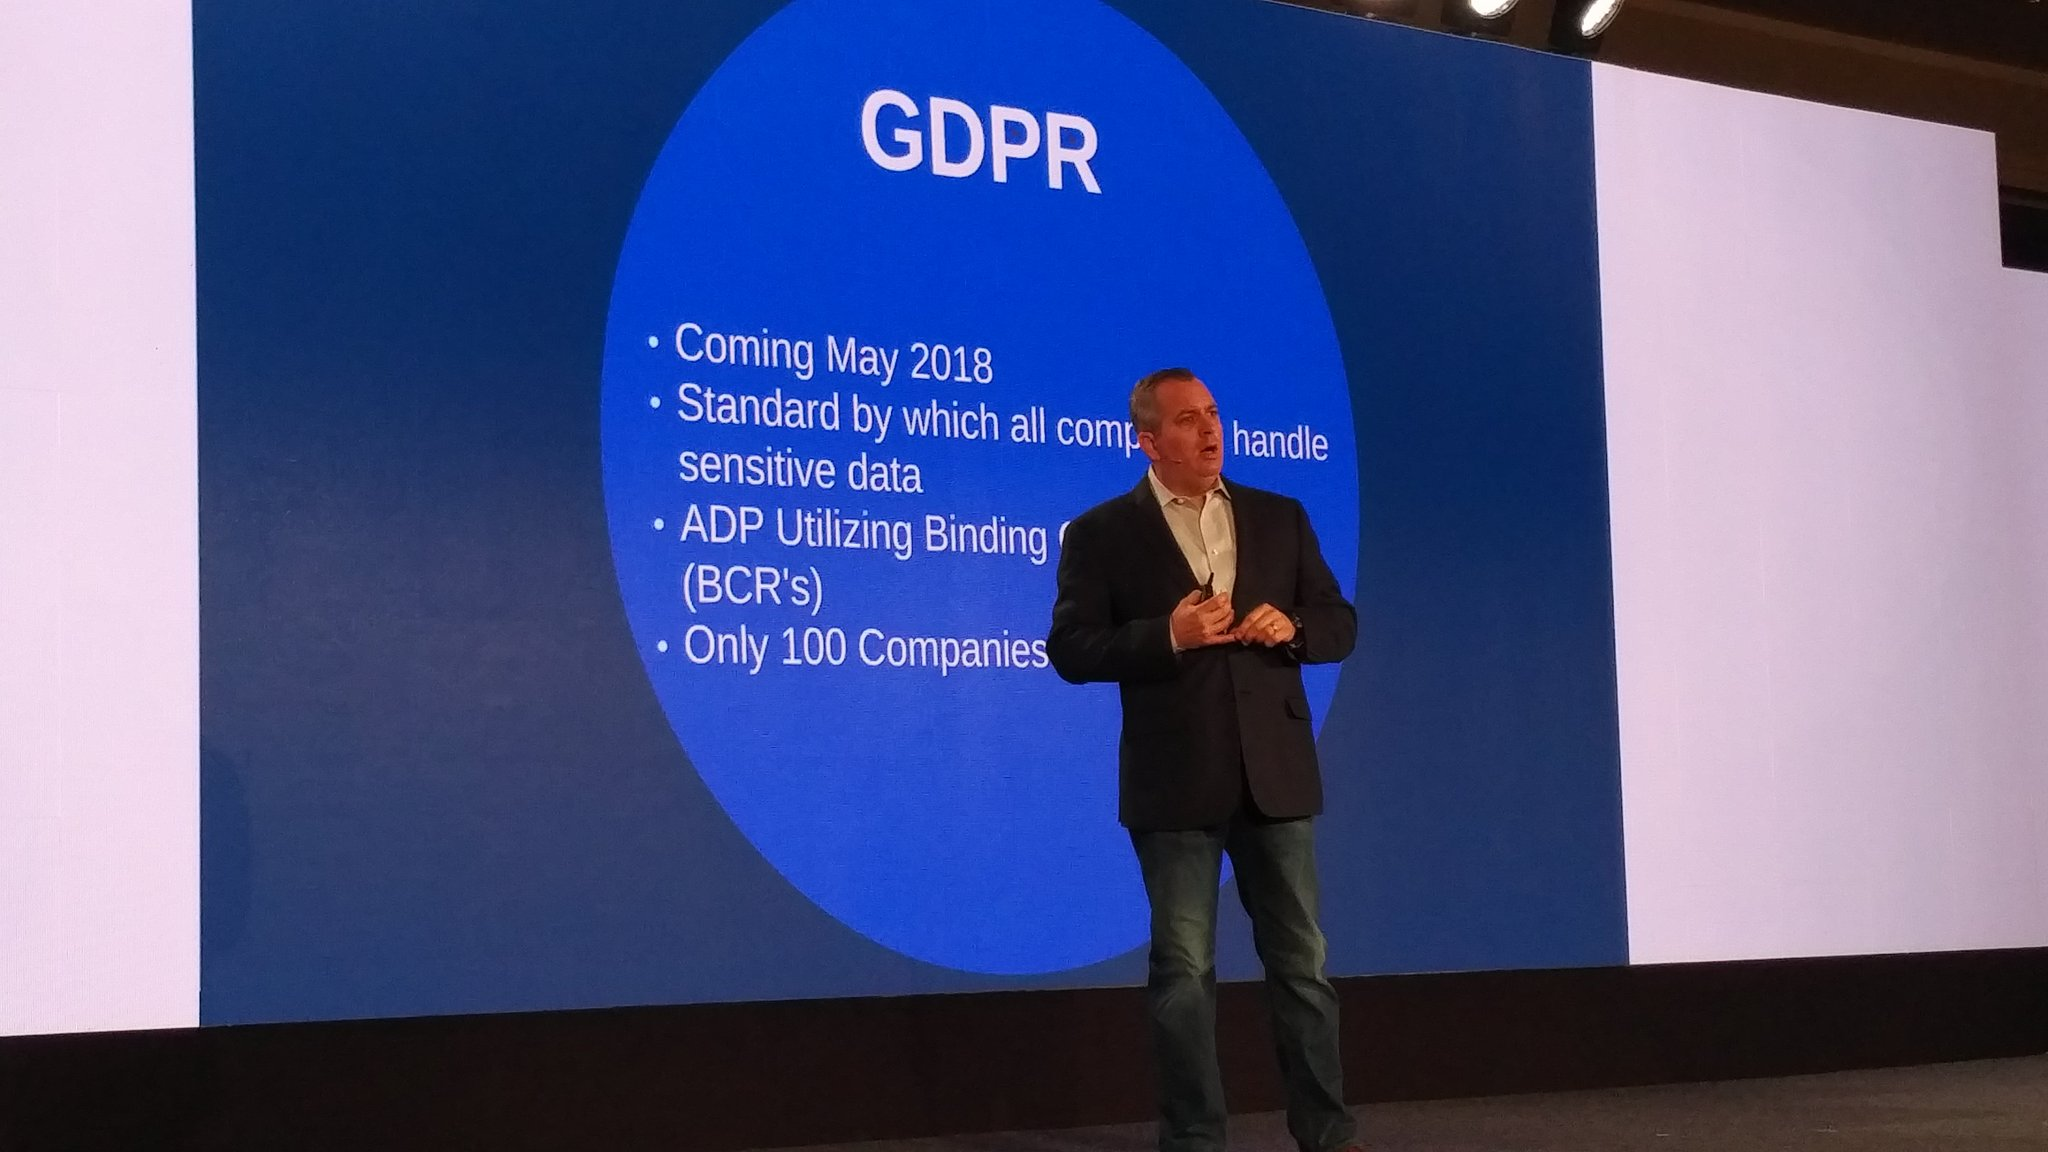 GDPR is coming says @ADP Cloutier #ADPReThink https://t.co/1ybtXCGtgC